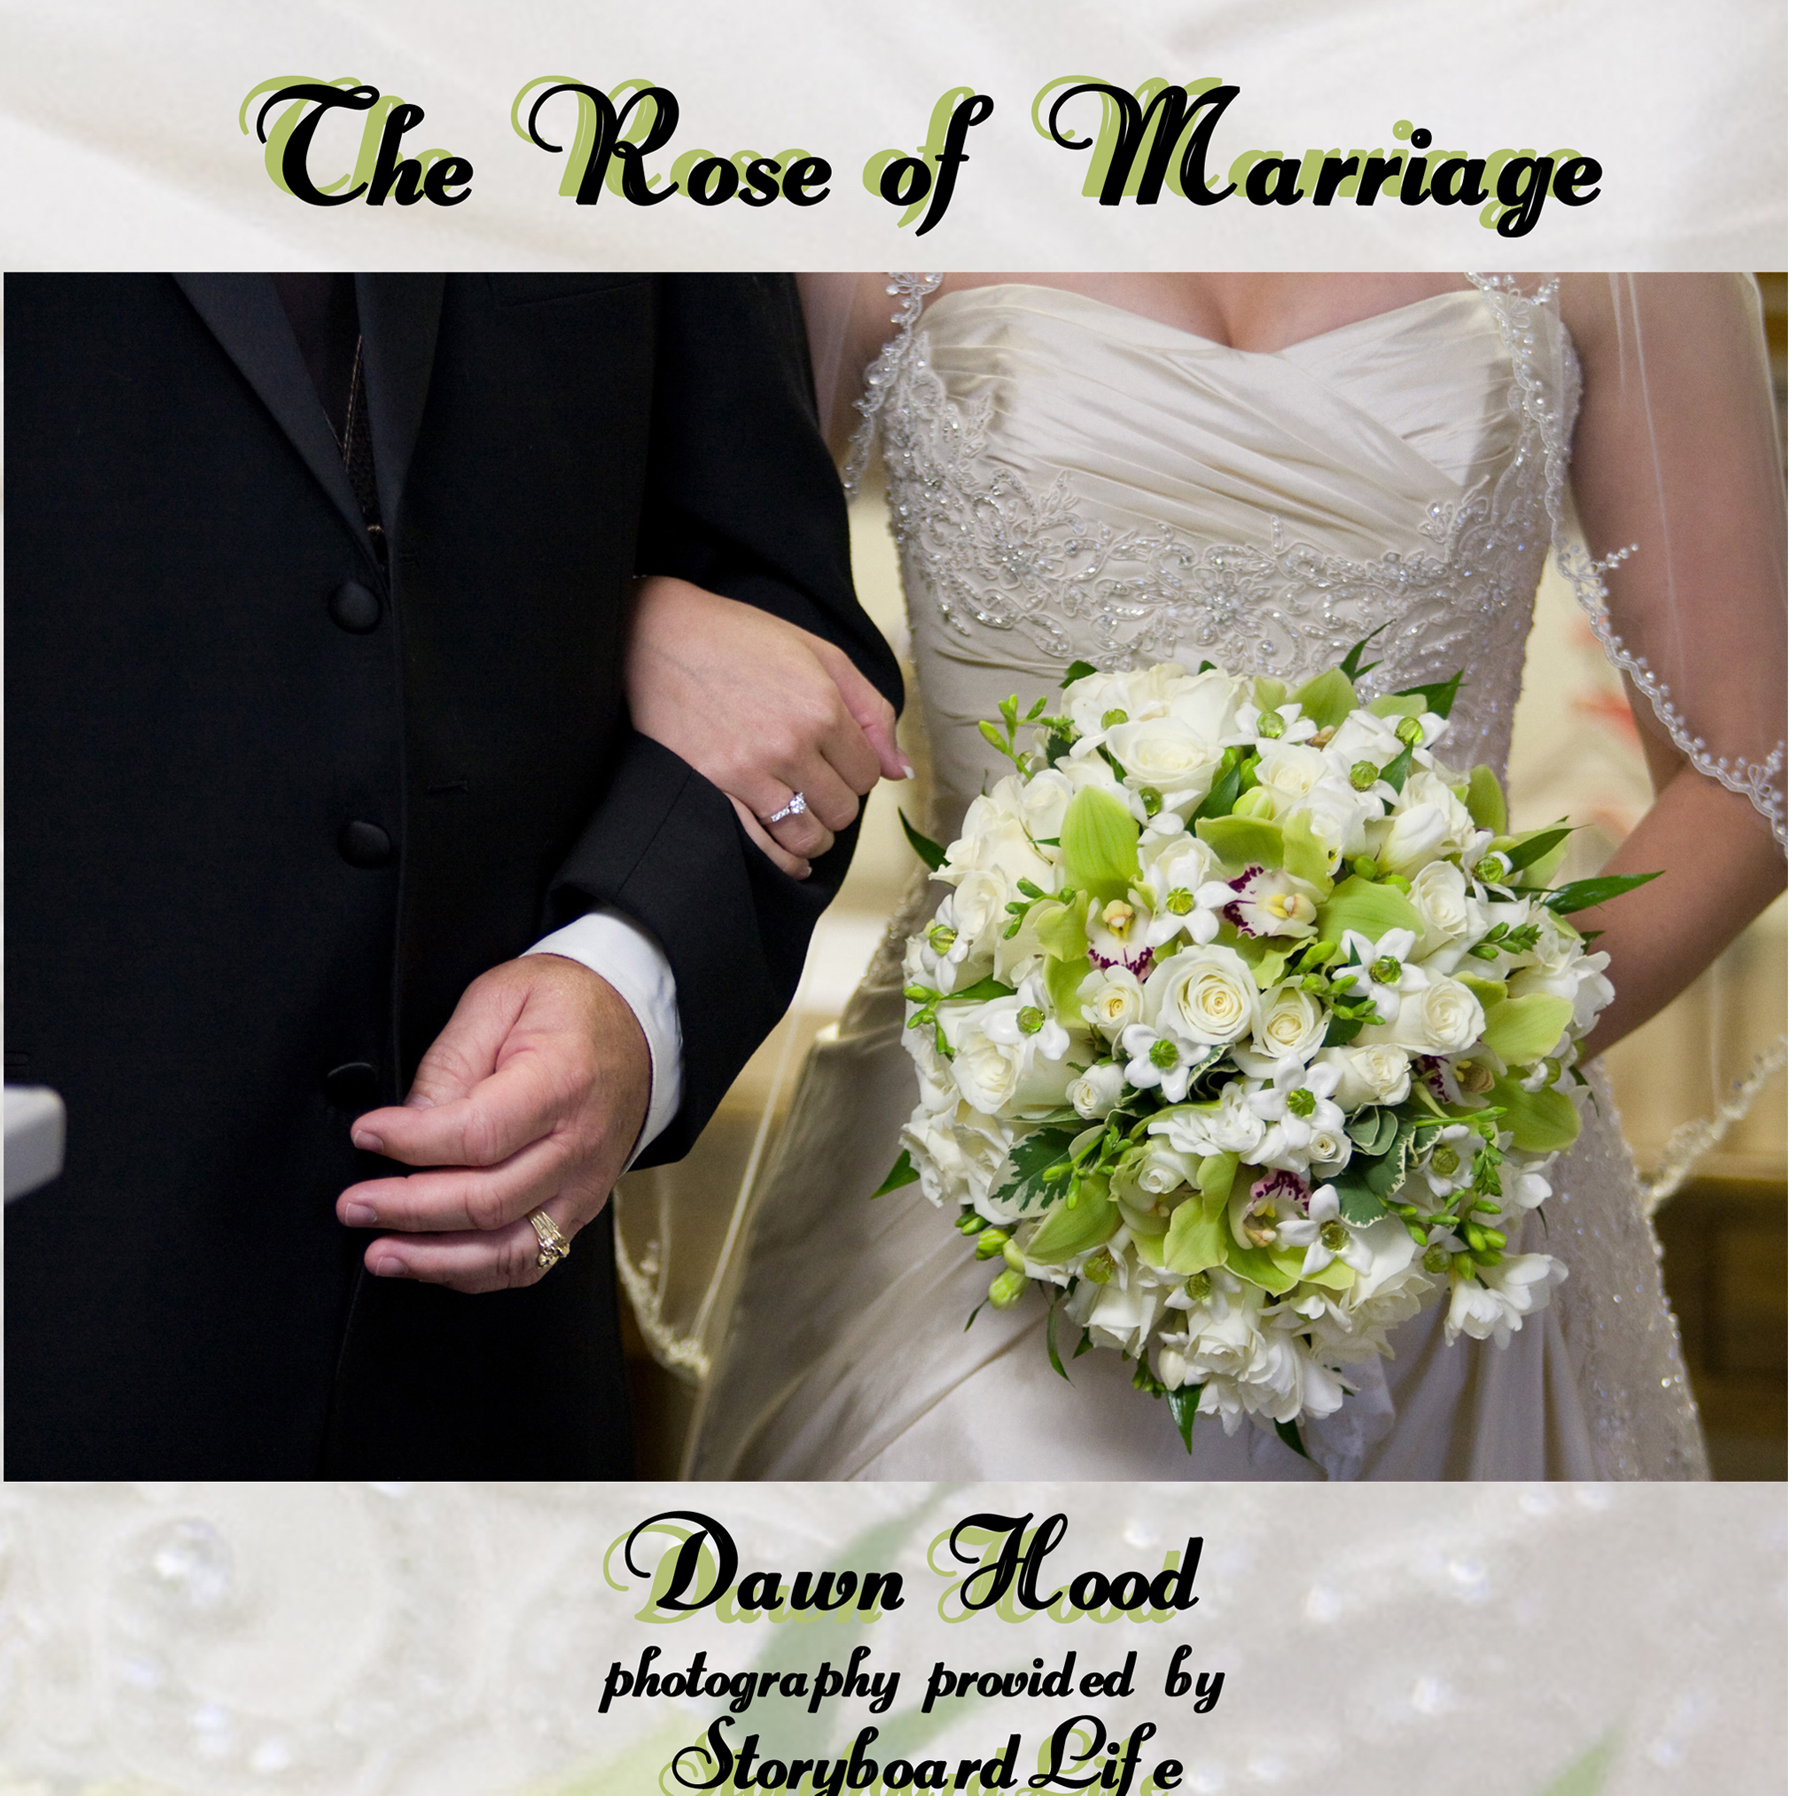 The Rose of Marriage